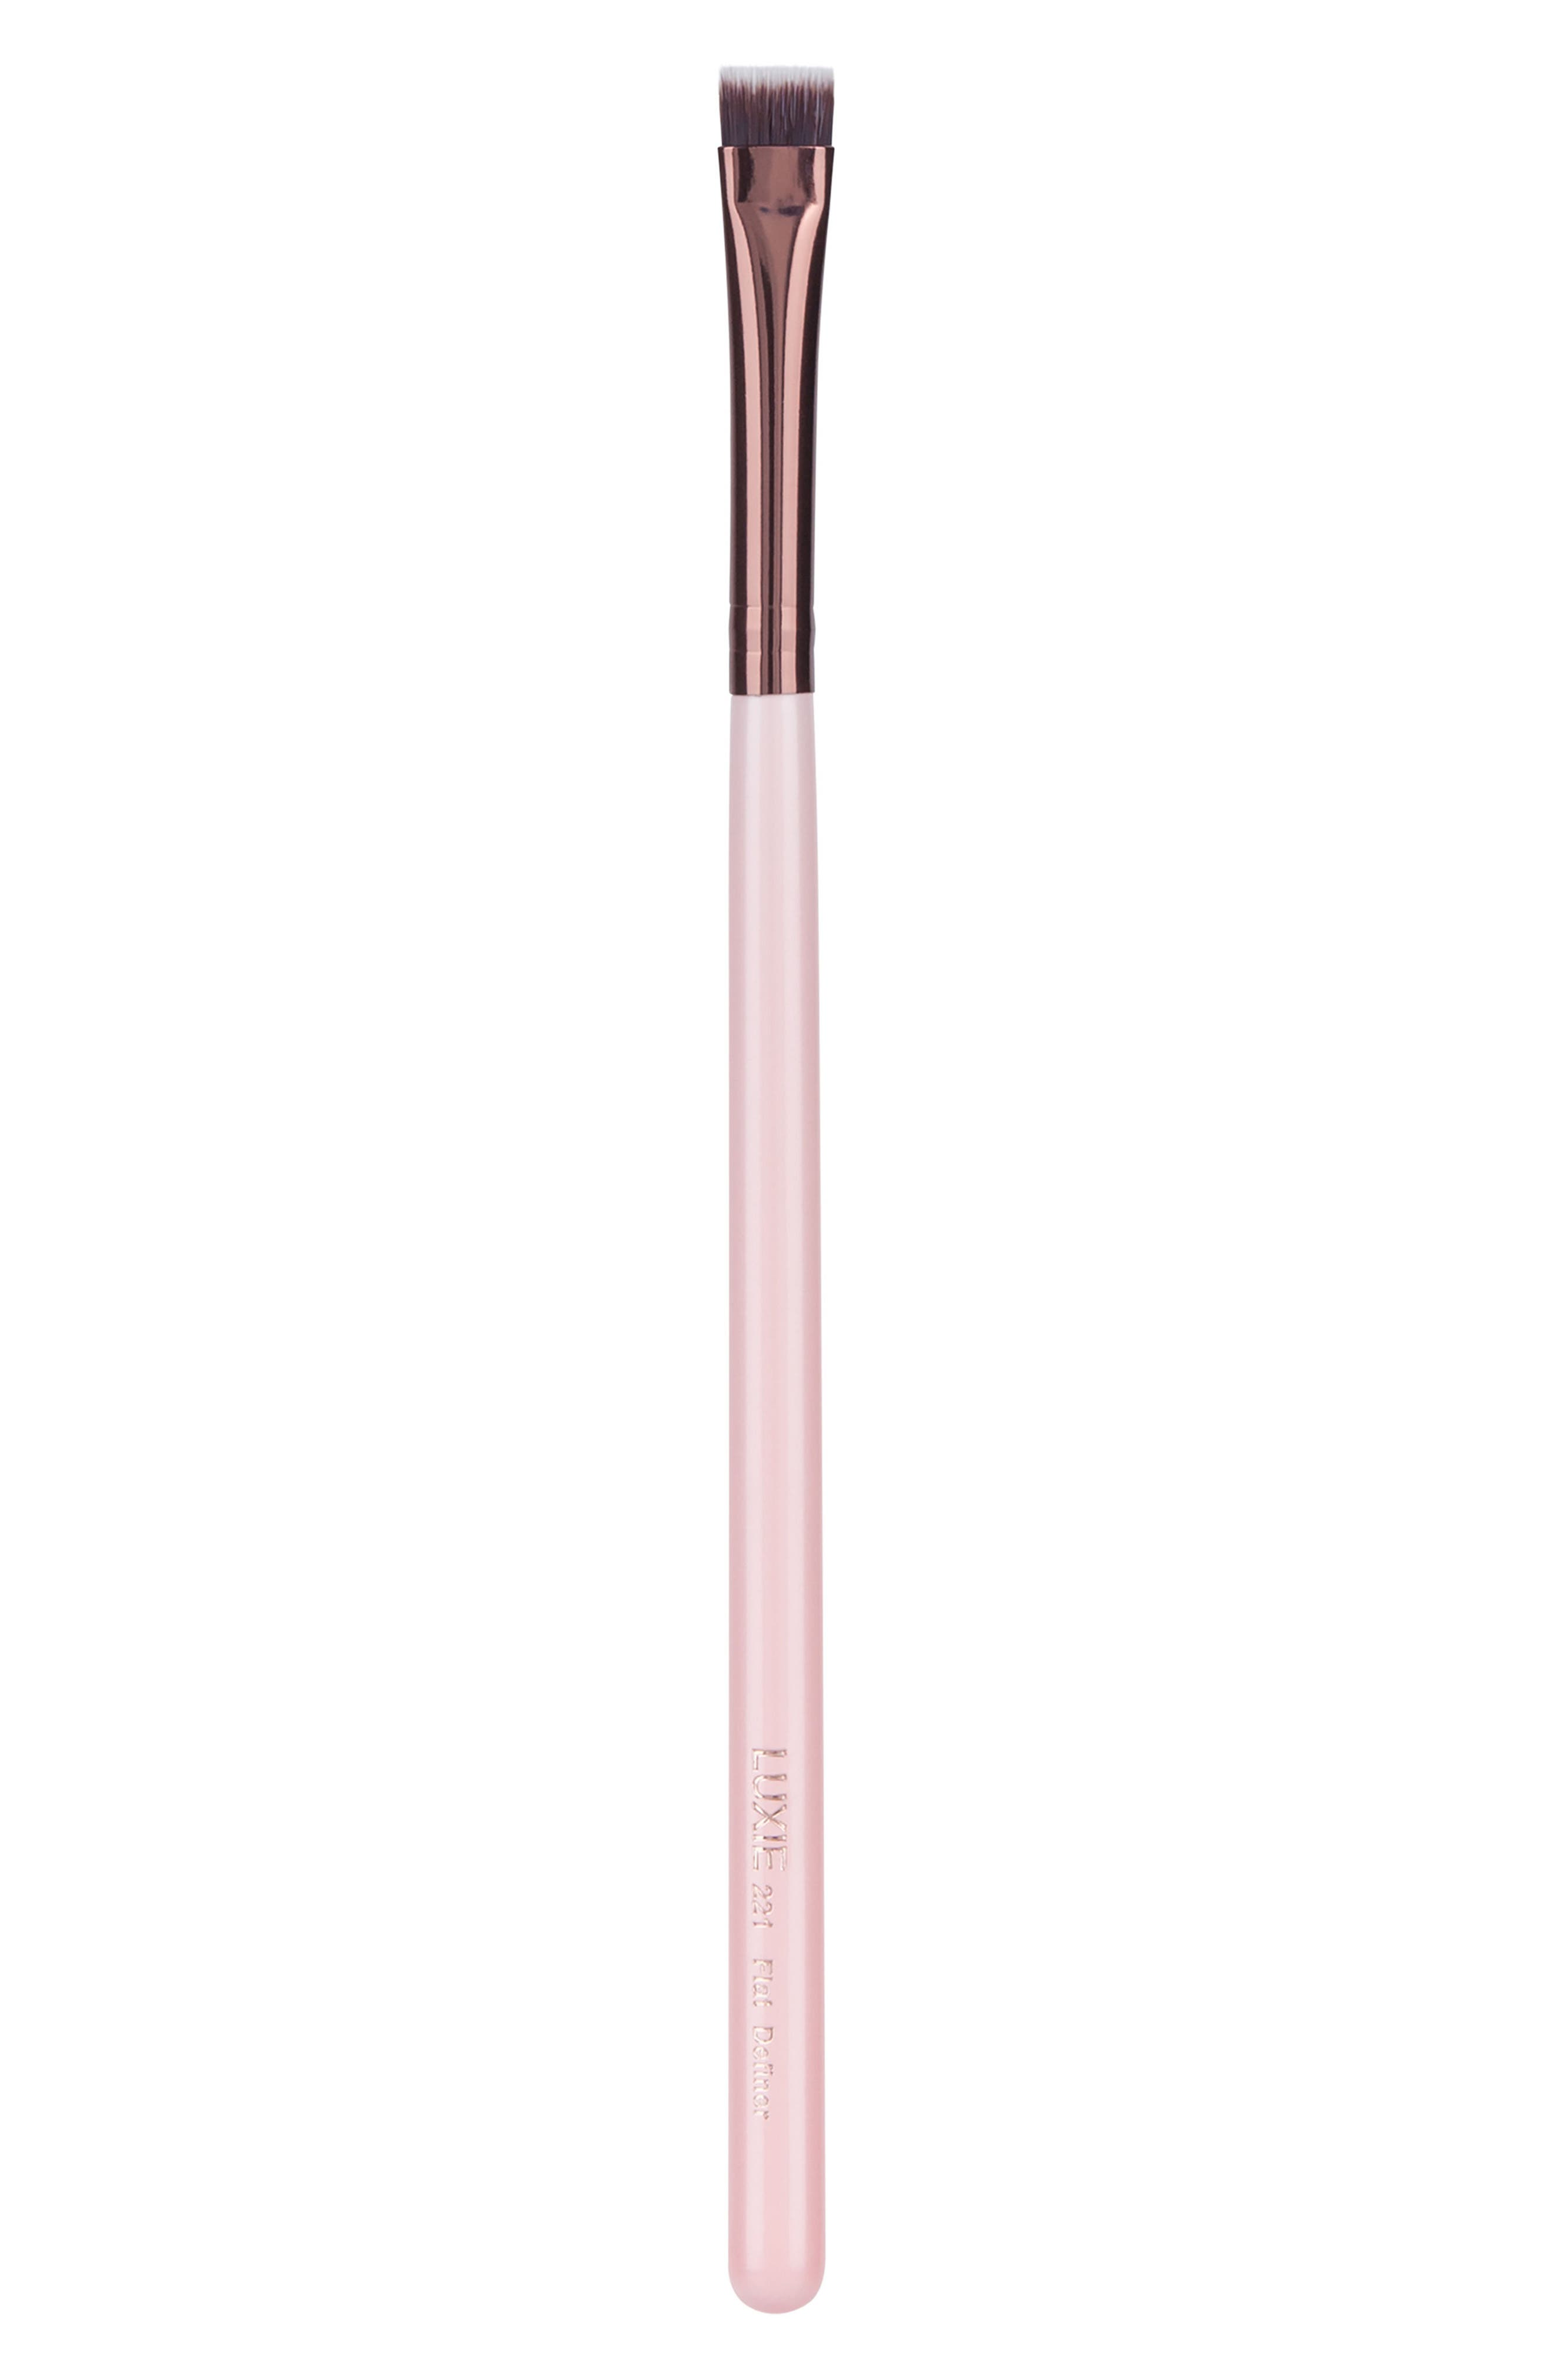 LUXIE 221 ROSE GOLD FLAT DEFINER BRUSH